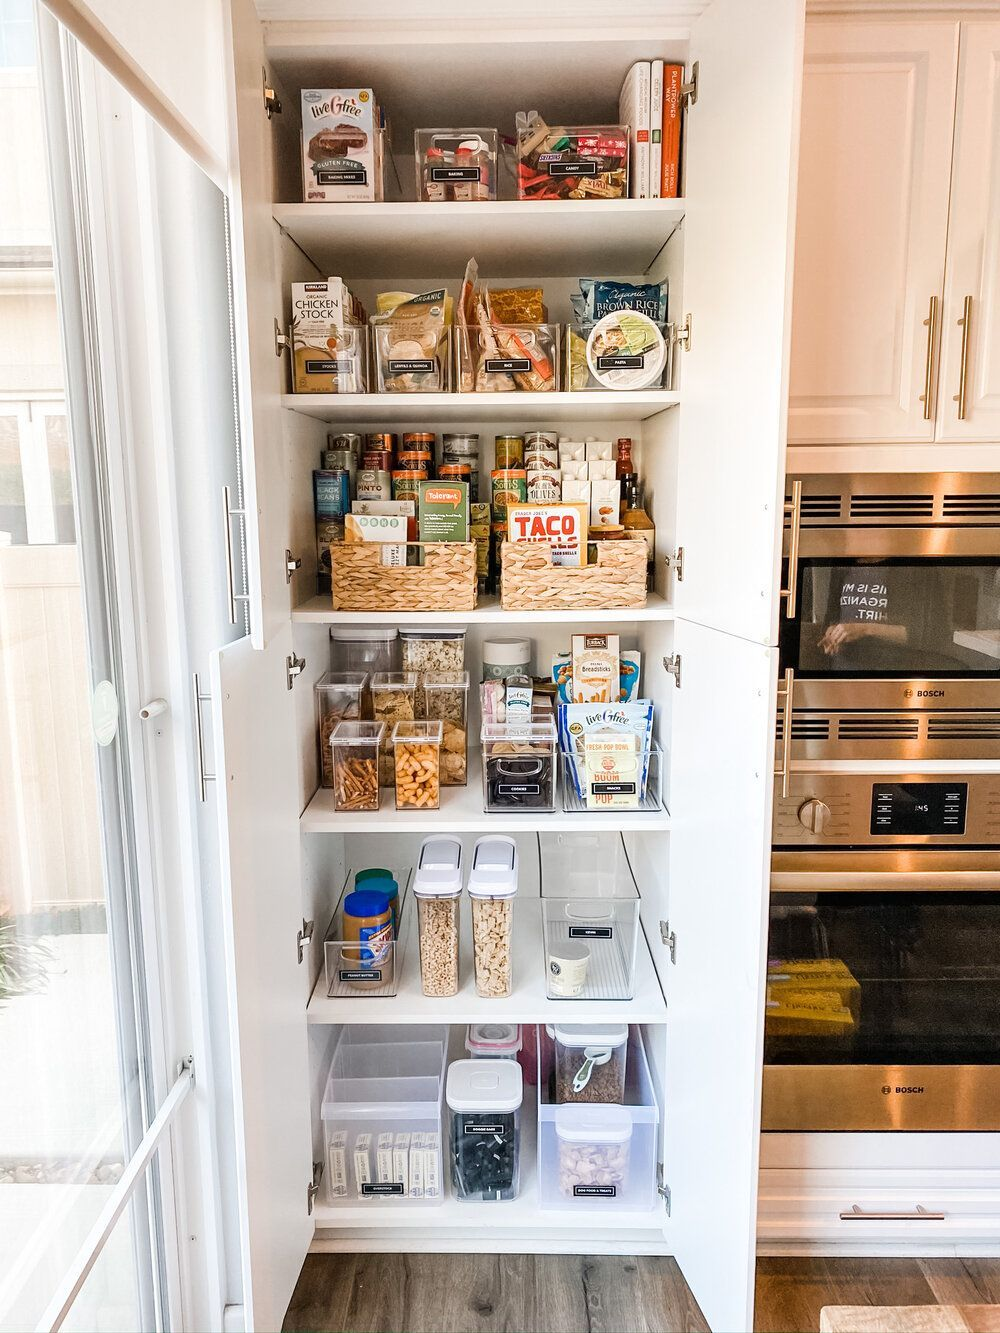 7 Products To Maximize That Dreaded Deep Pantry Riorganize In 2020 Deep Pantry Kitchen Organization Pantry Kitchen Hacks Organization